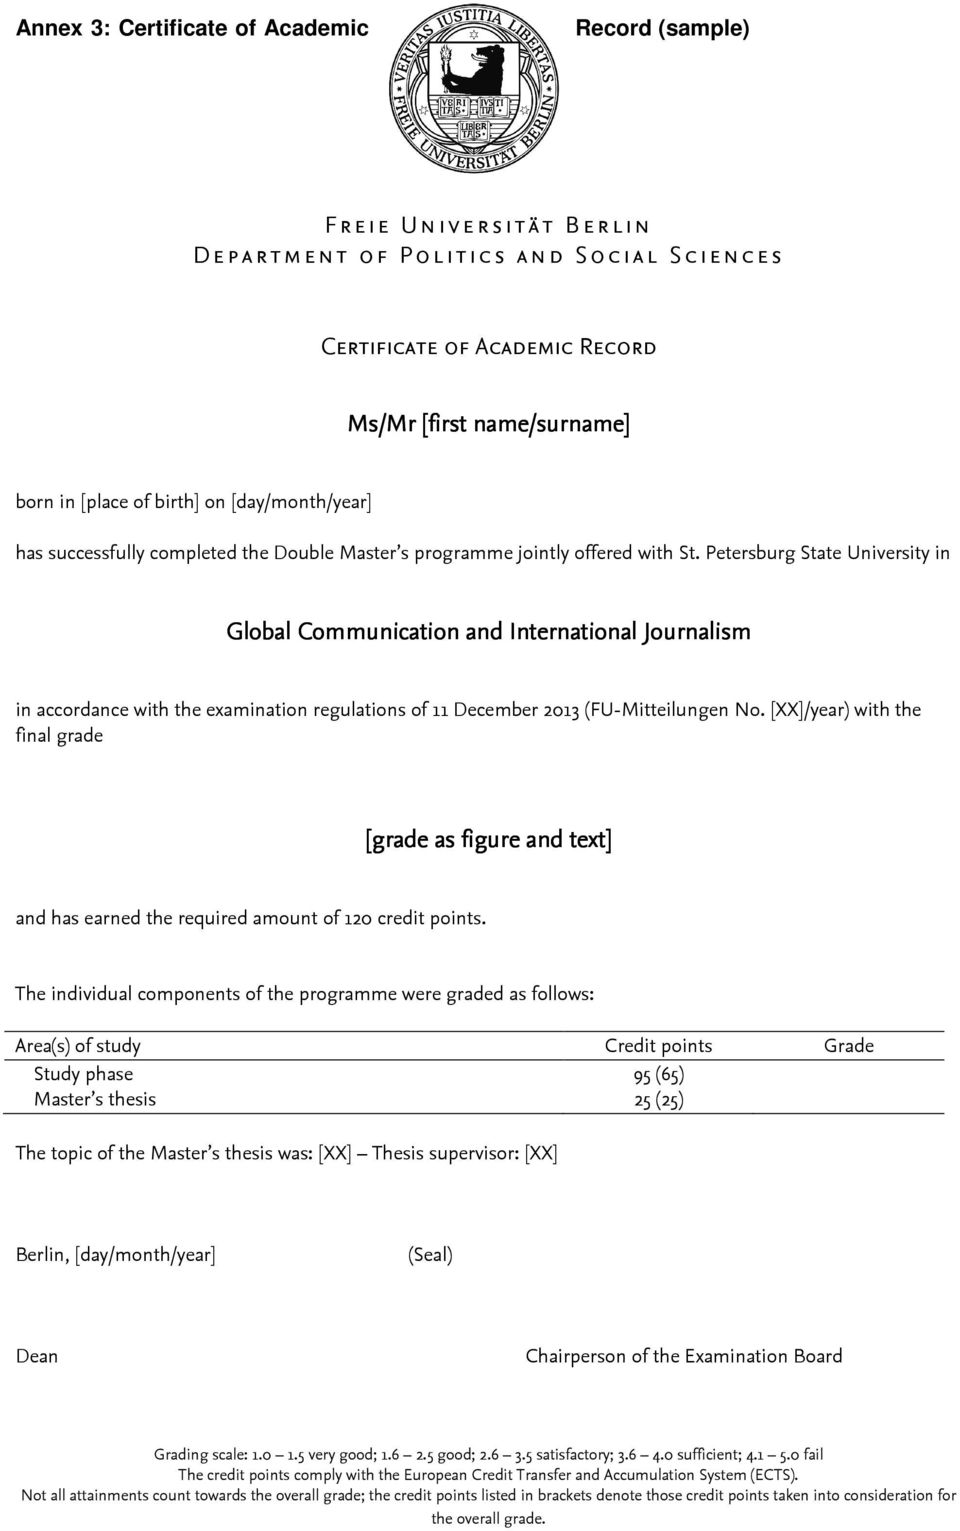 Petersburg State University in Global Communication and International Journalism in accordance with the examination regulations of 11 December 2013 (FU-Mitteilungen No.